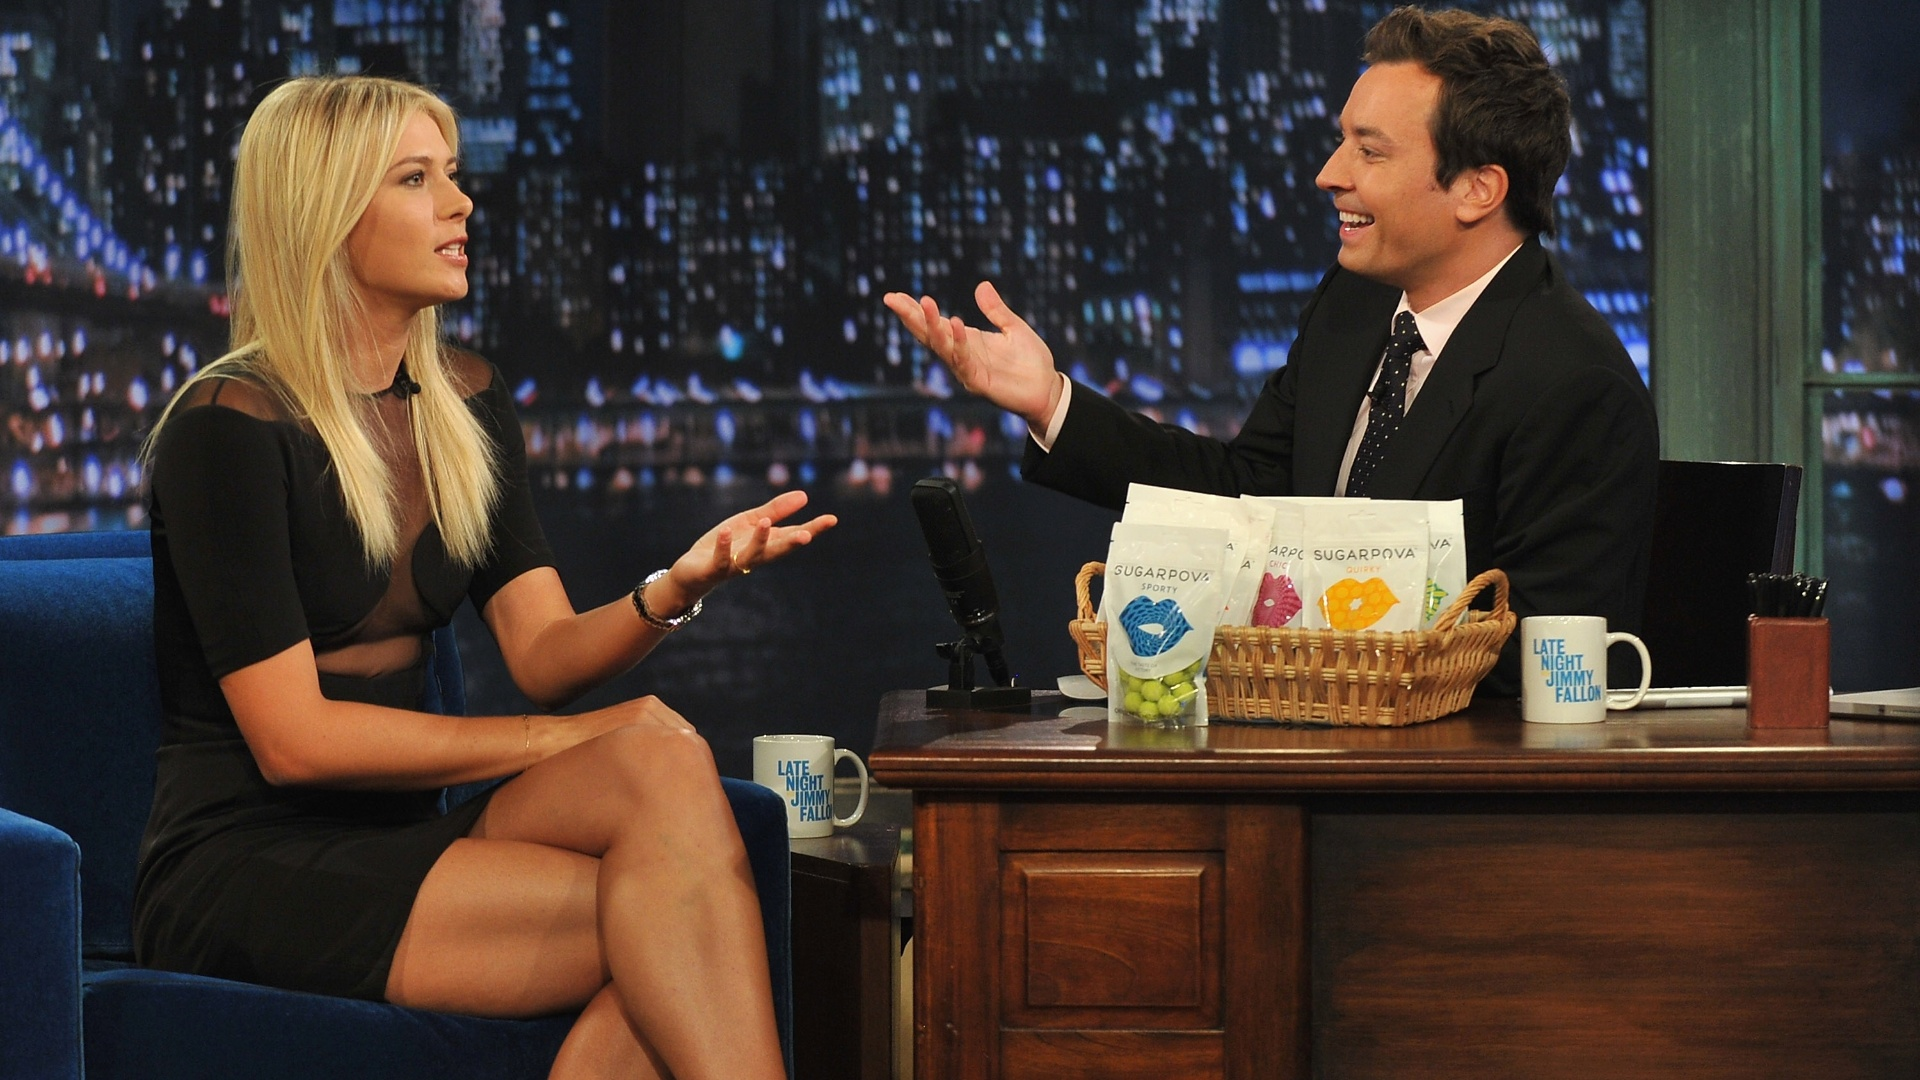 Tenista russa Maria Sharapova participa do programa Late Night With Jimmy Fallon para promover sua linha de doces, Sugarpova (20/08/2012)